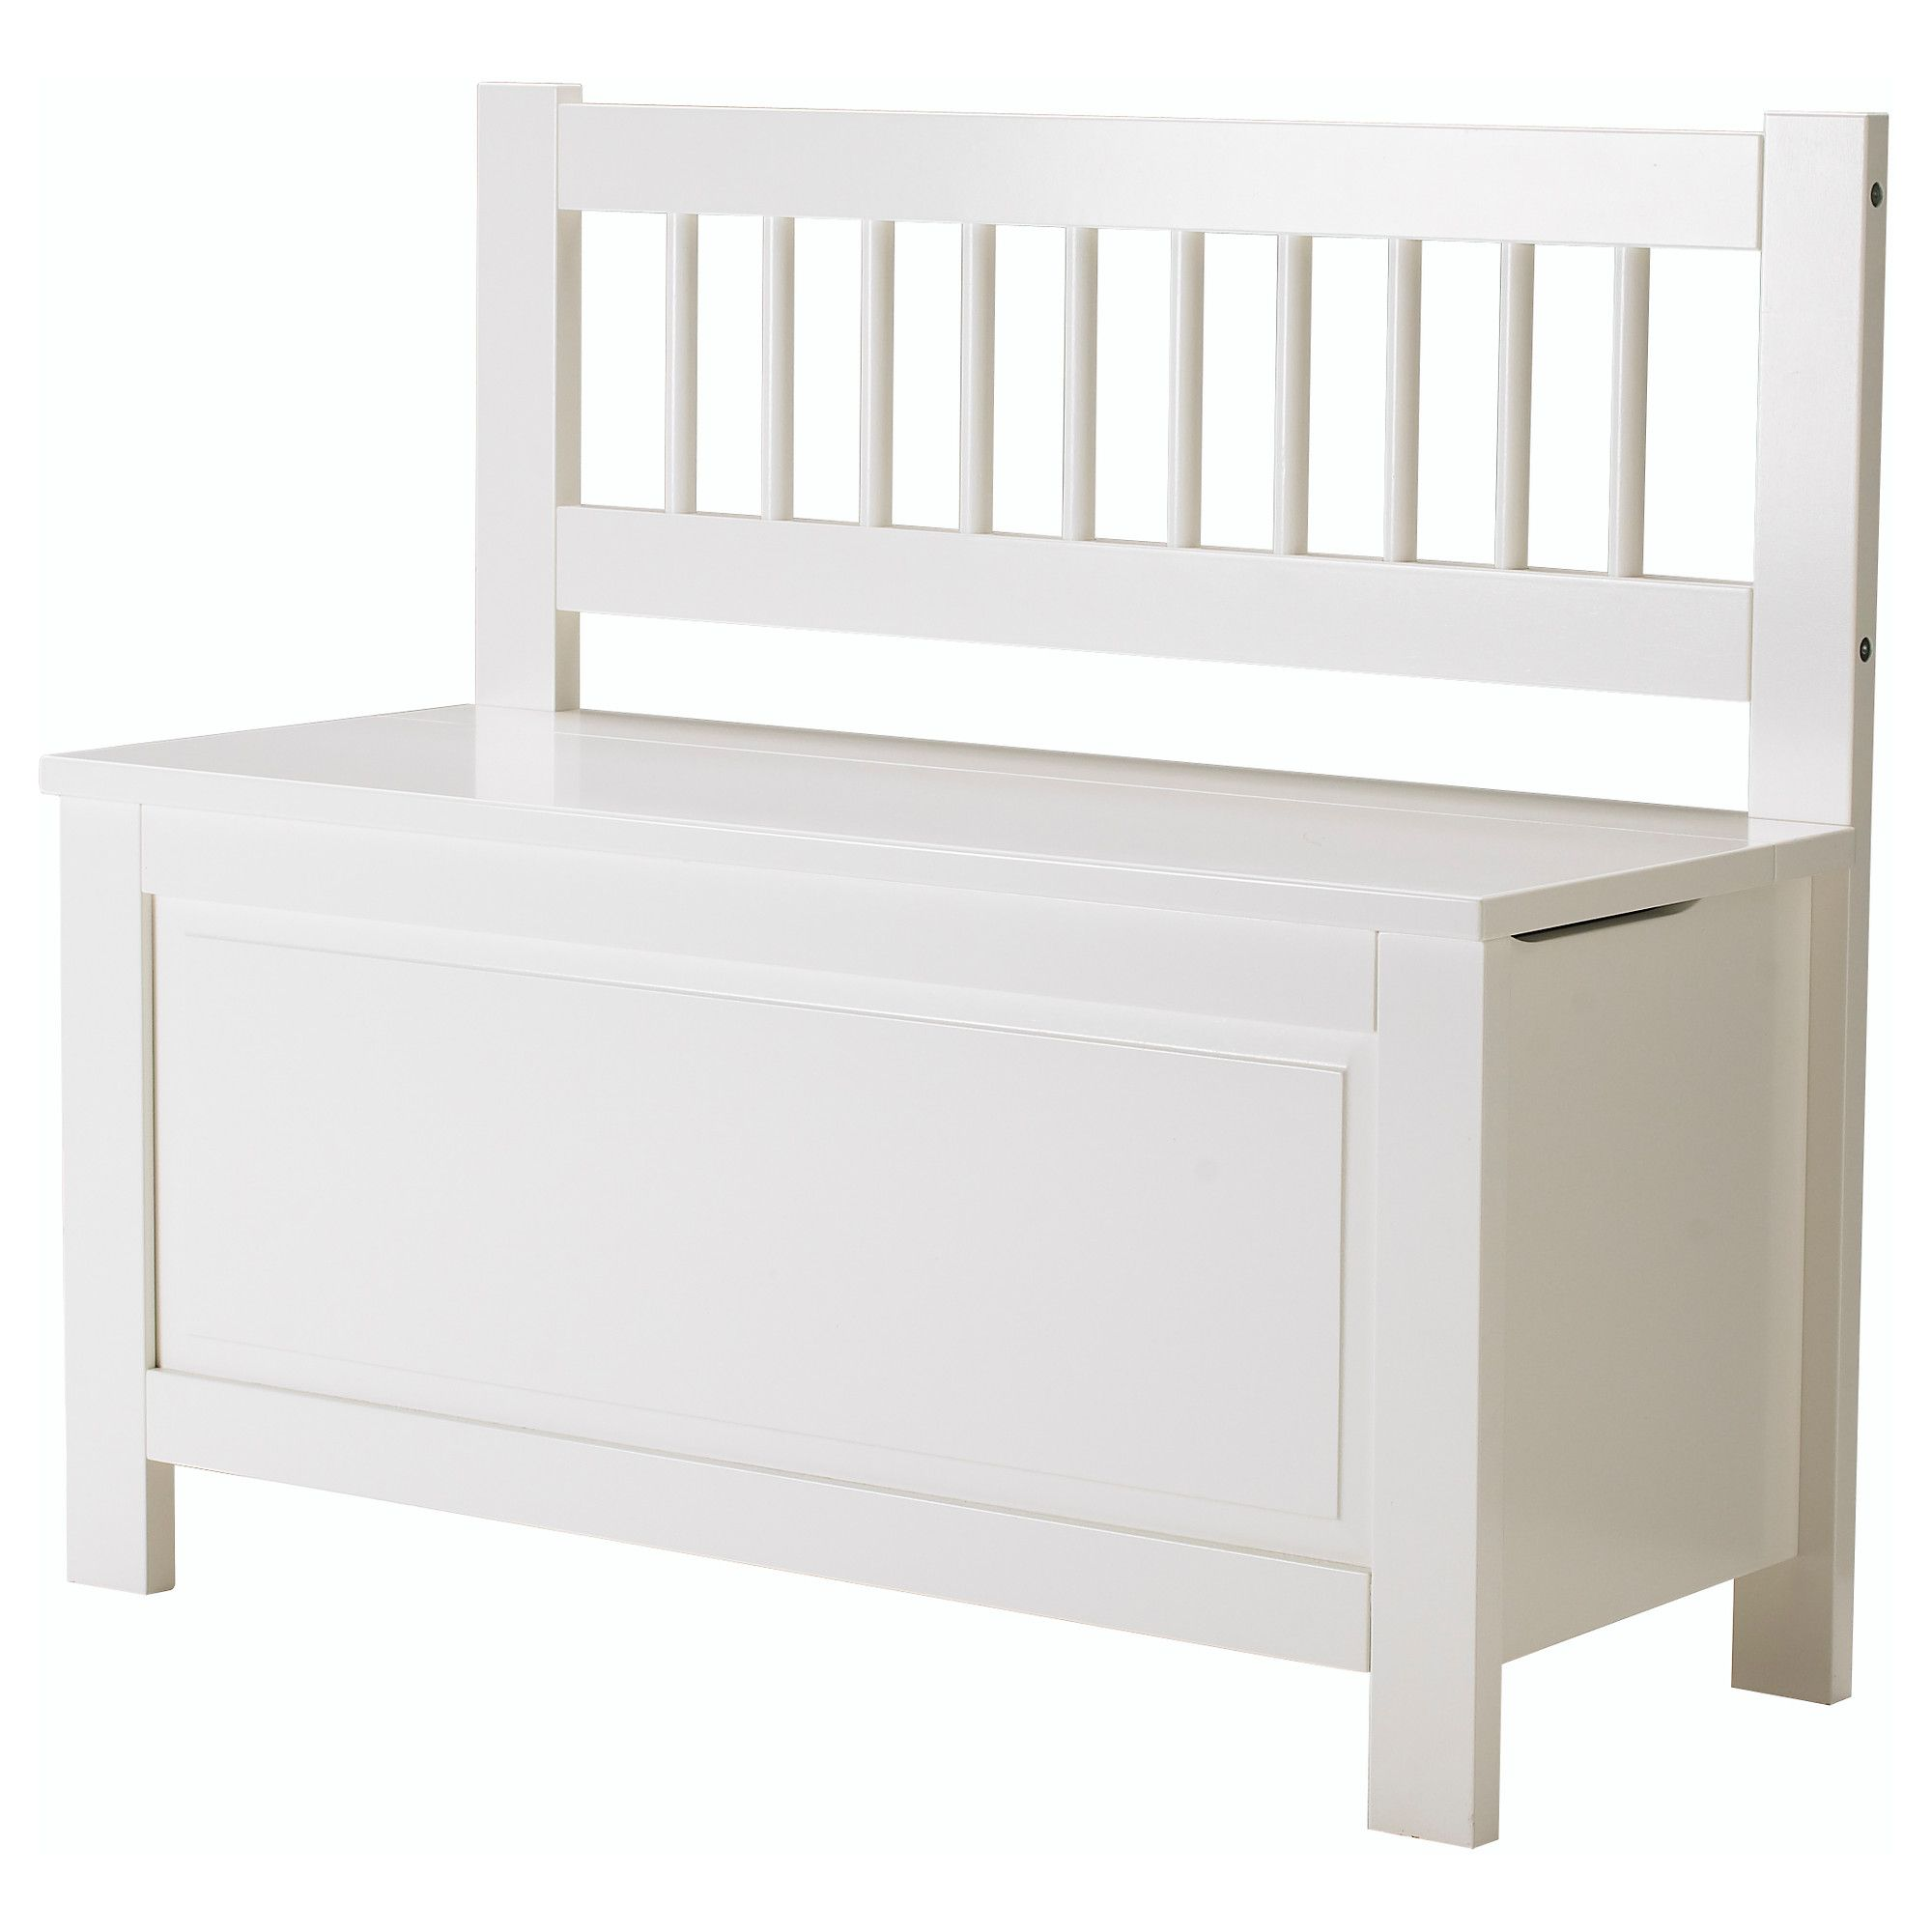 HEMNES Storage bench - IKEA | For the IKEA trip | Pinterest | HEMNES ...